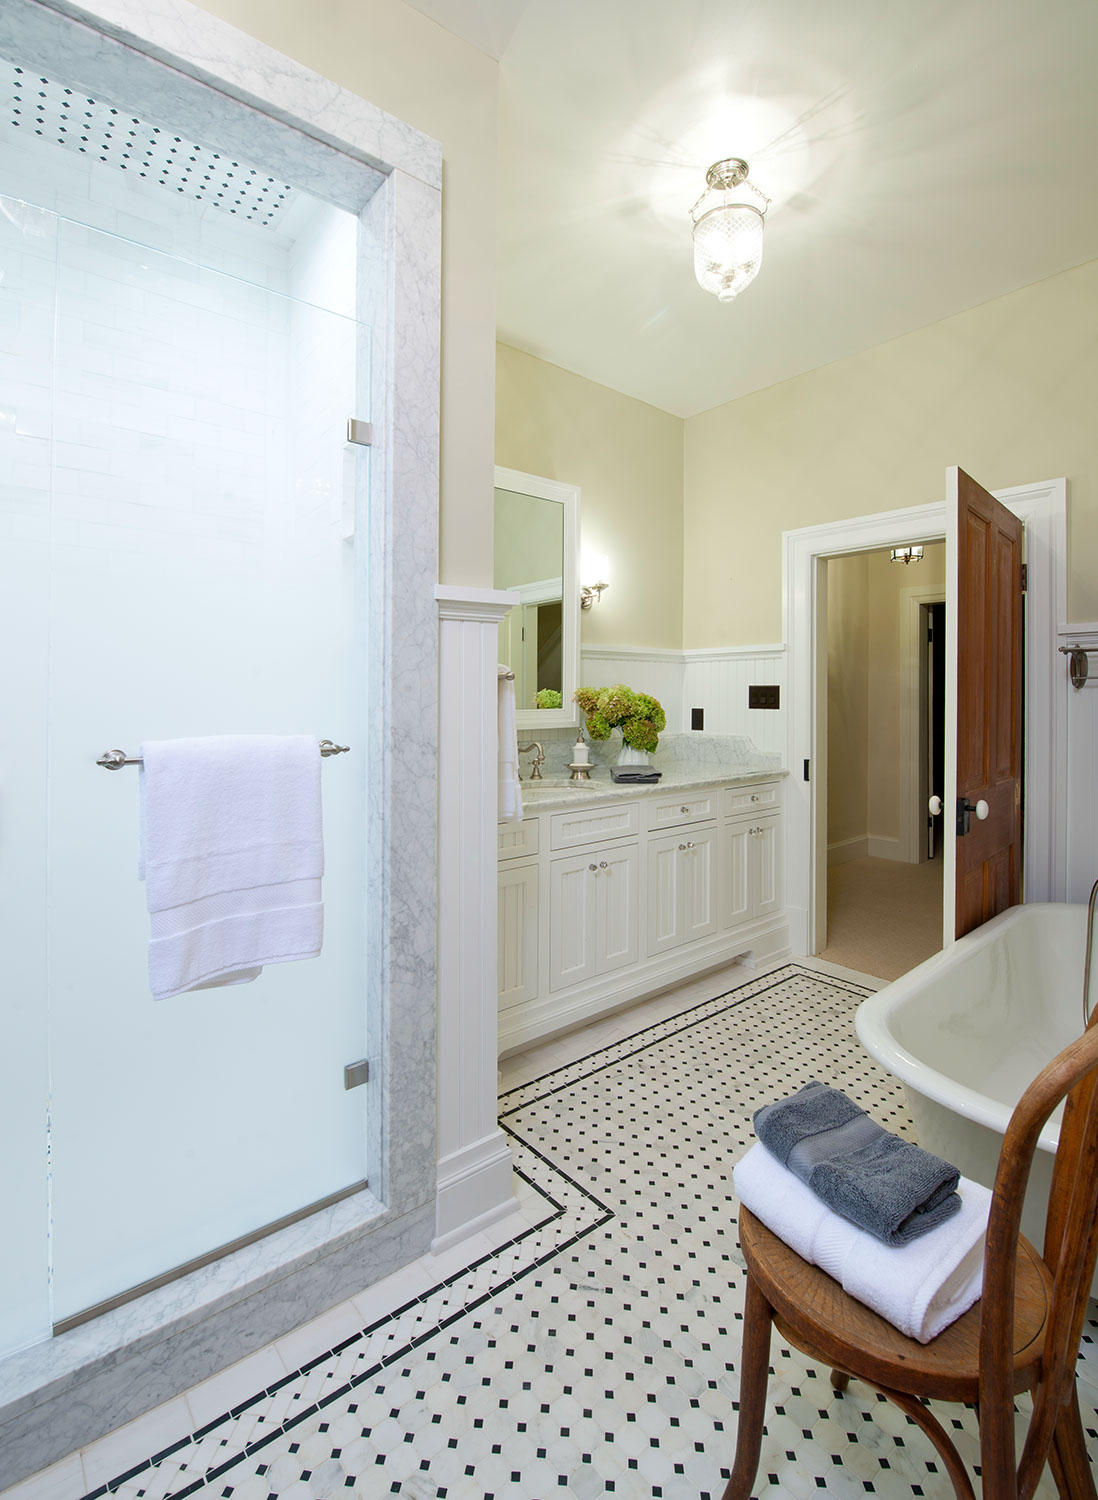 bathroom-with-white-tile-floor